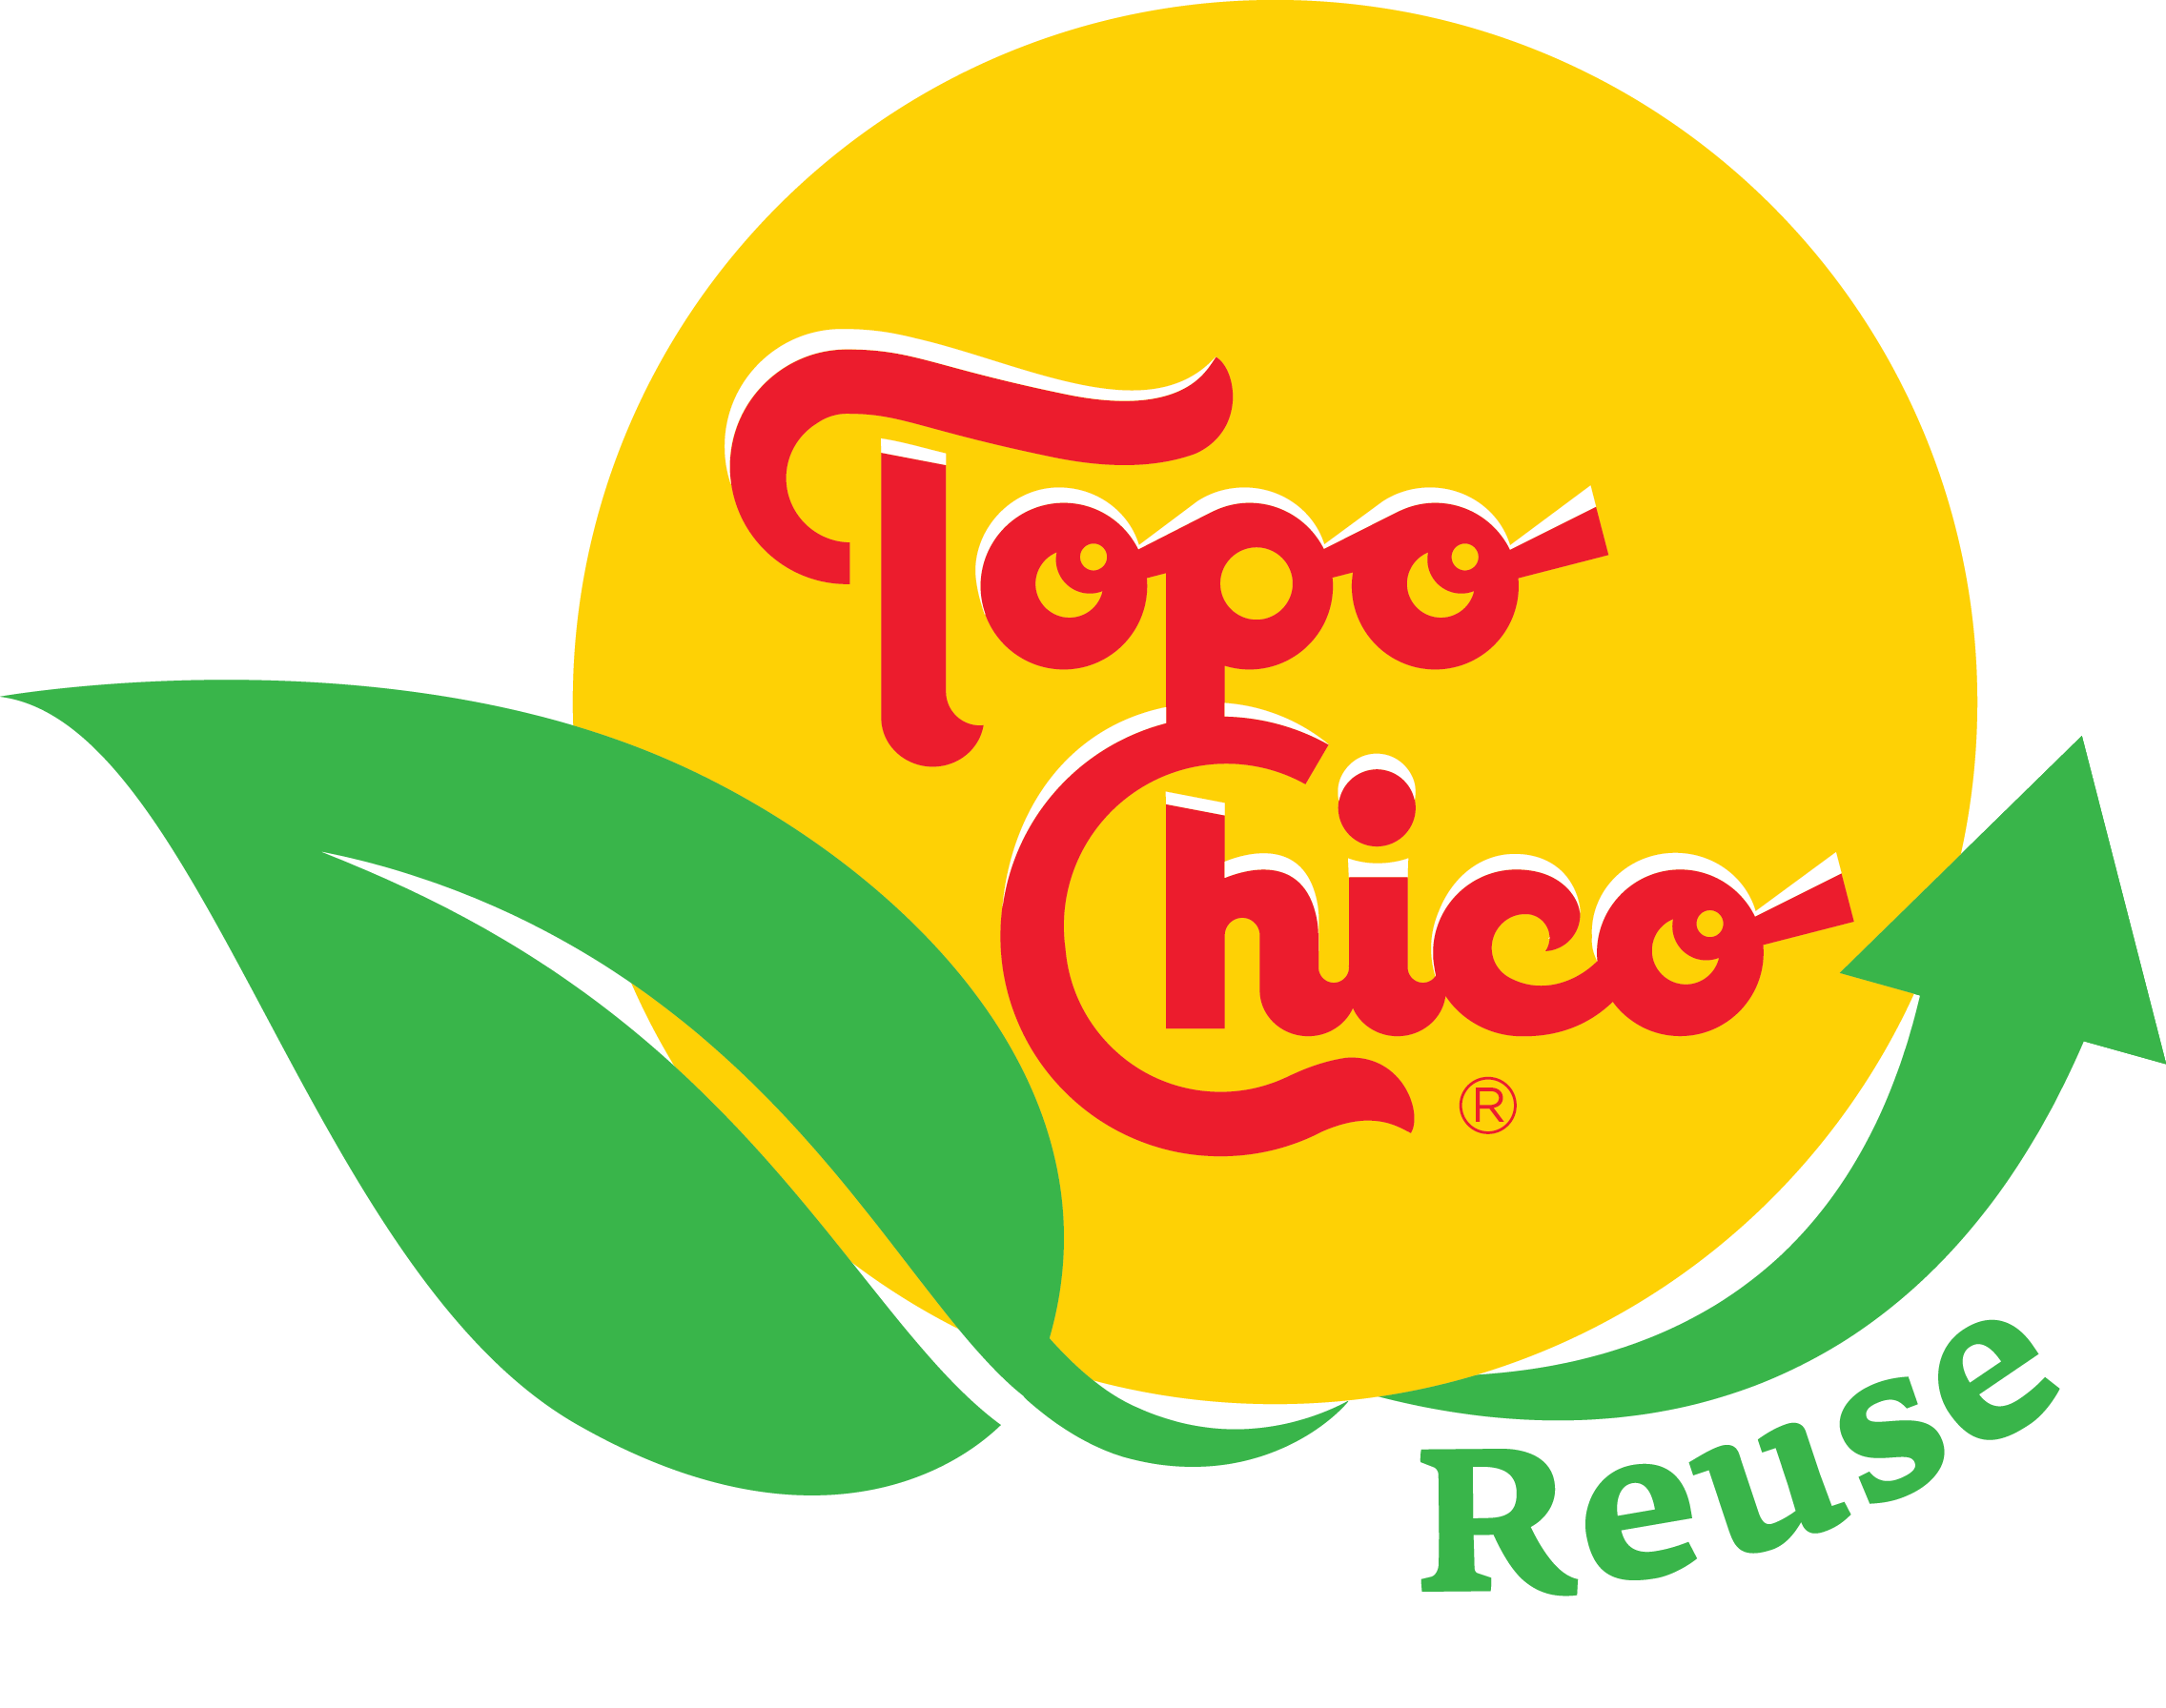 Topo Chico doesn't just refresh; it damn well lets you know it's there.